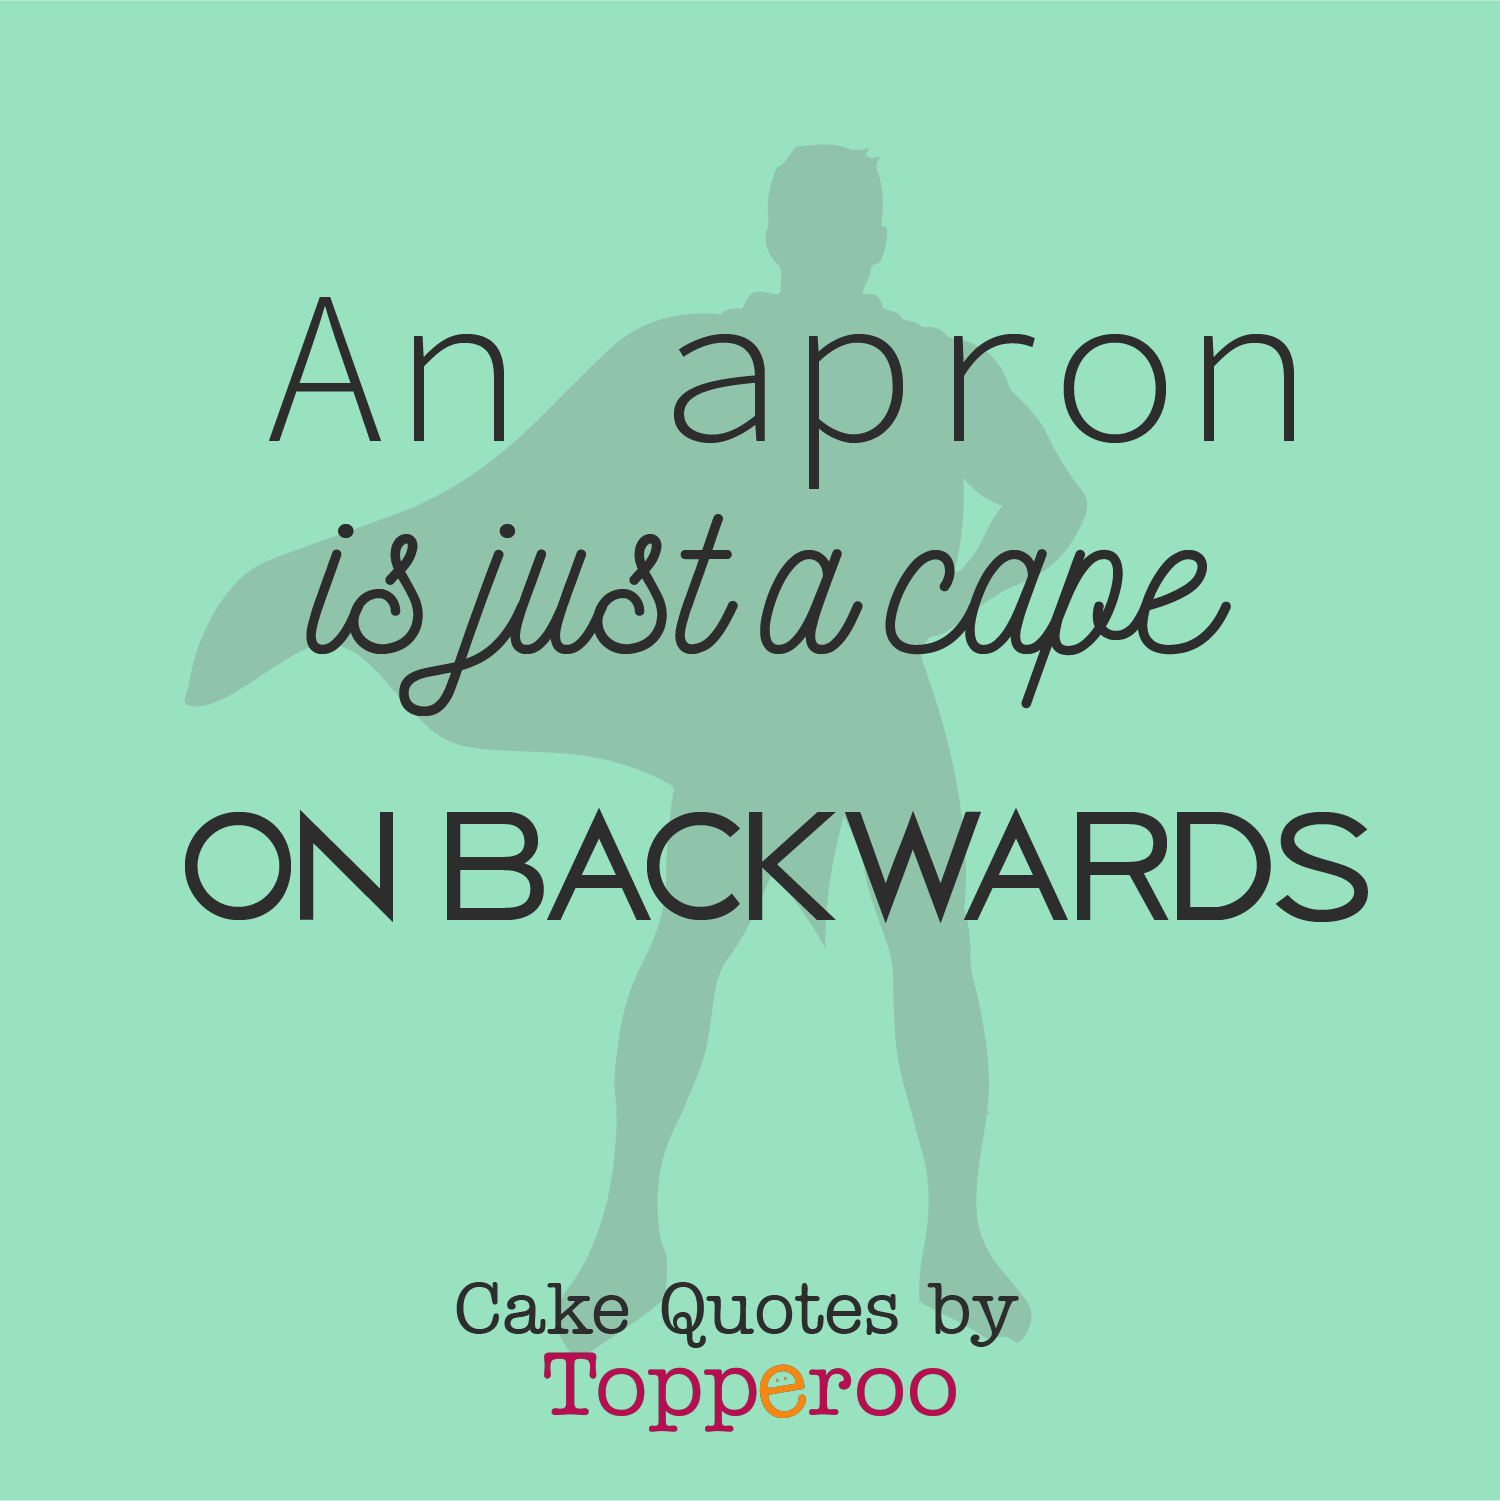 An apron is just a cape on backwards - Topperoo Quotes